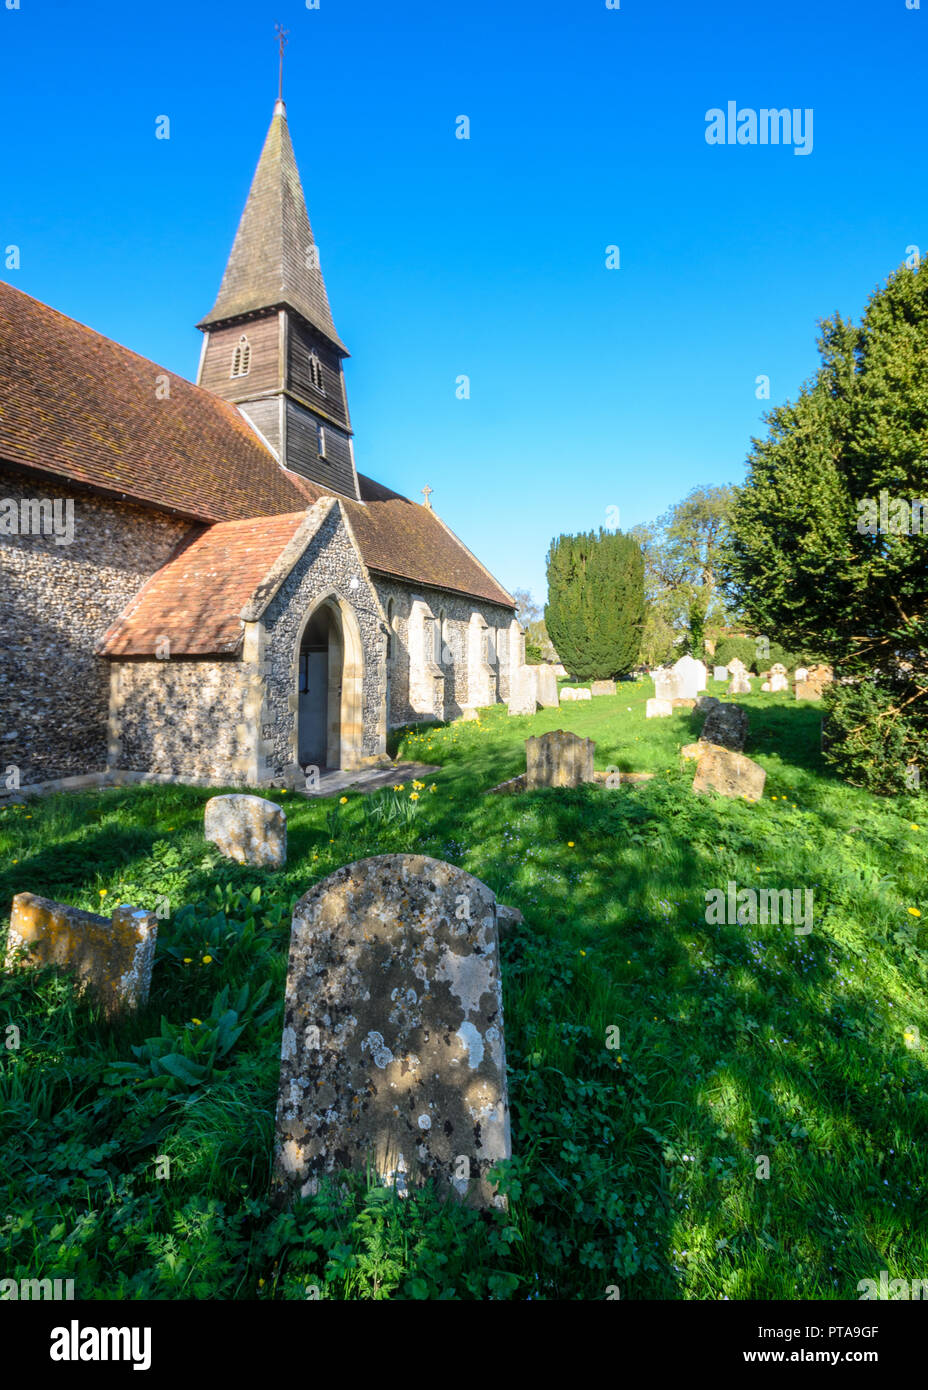 Thame, England, UK - April 18, 2015: Spring sunshine on the church, spire and graveyard of St Mary's Church in Sydenham, near Thame, Oxfordshire. - Stock Image